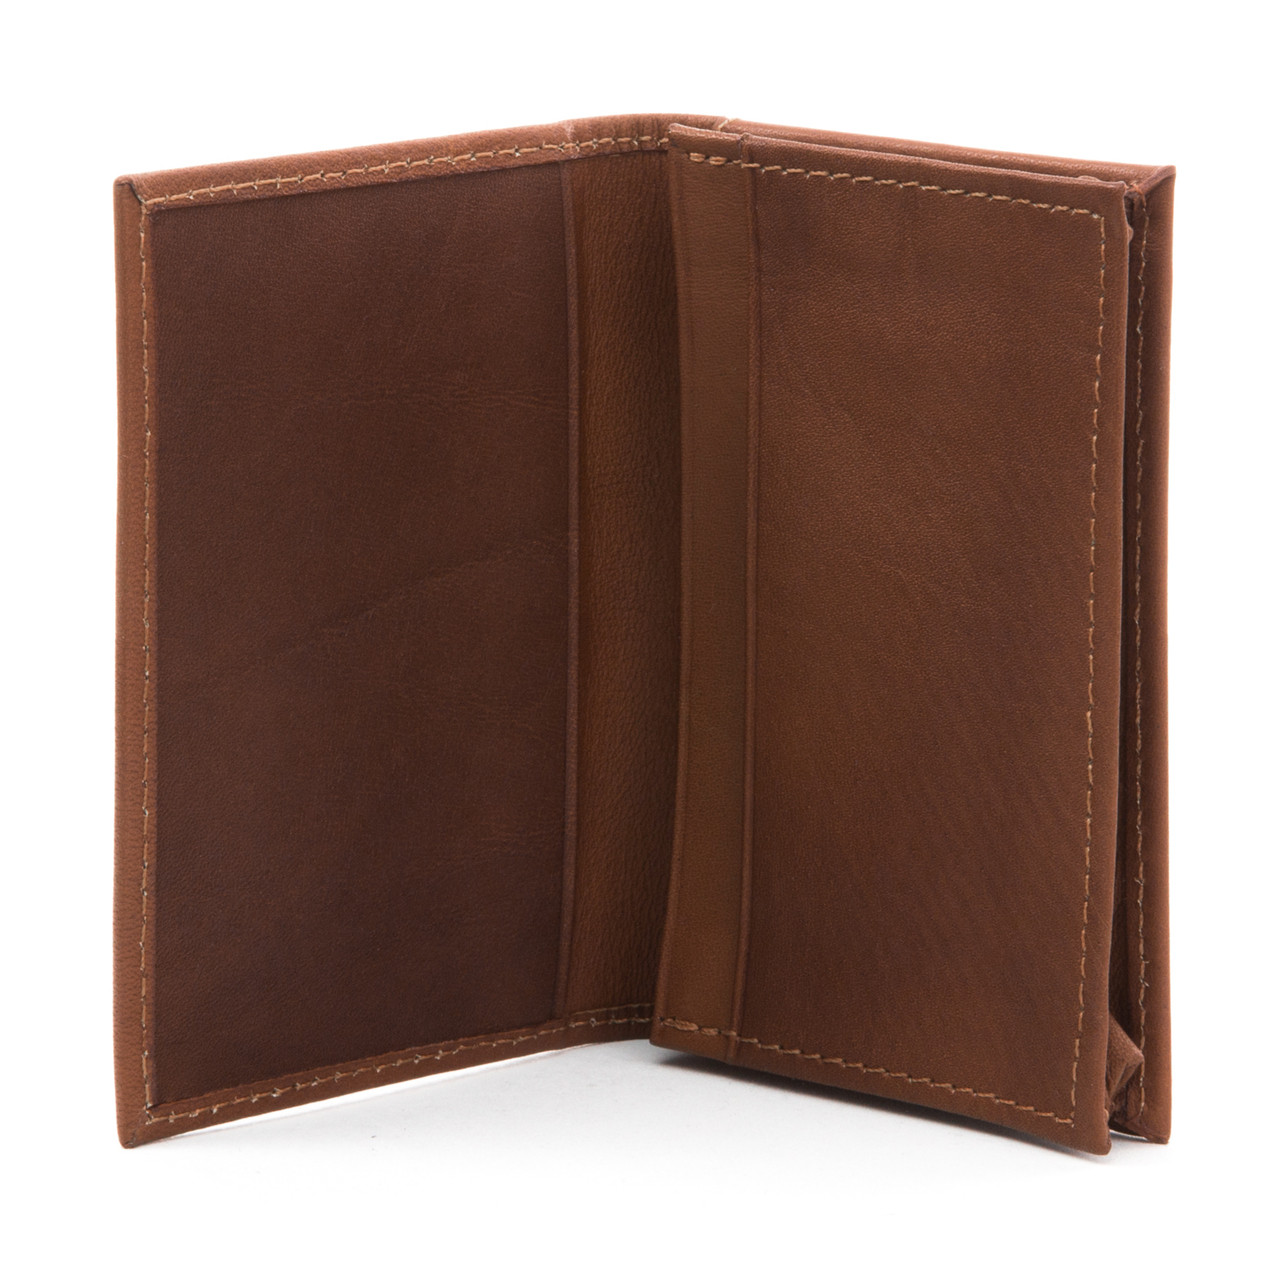 Carlo - Business and Credit Card Case Wallet - Open Front View, Saddle